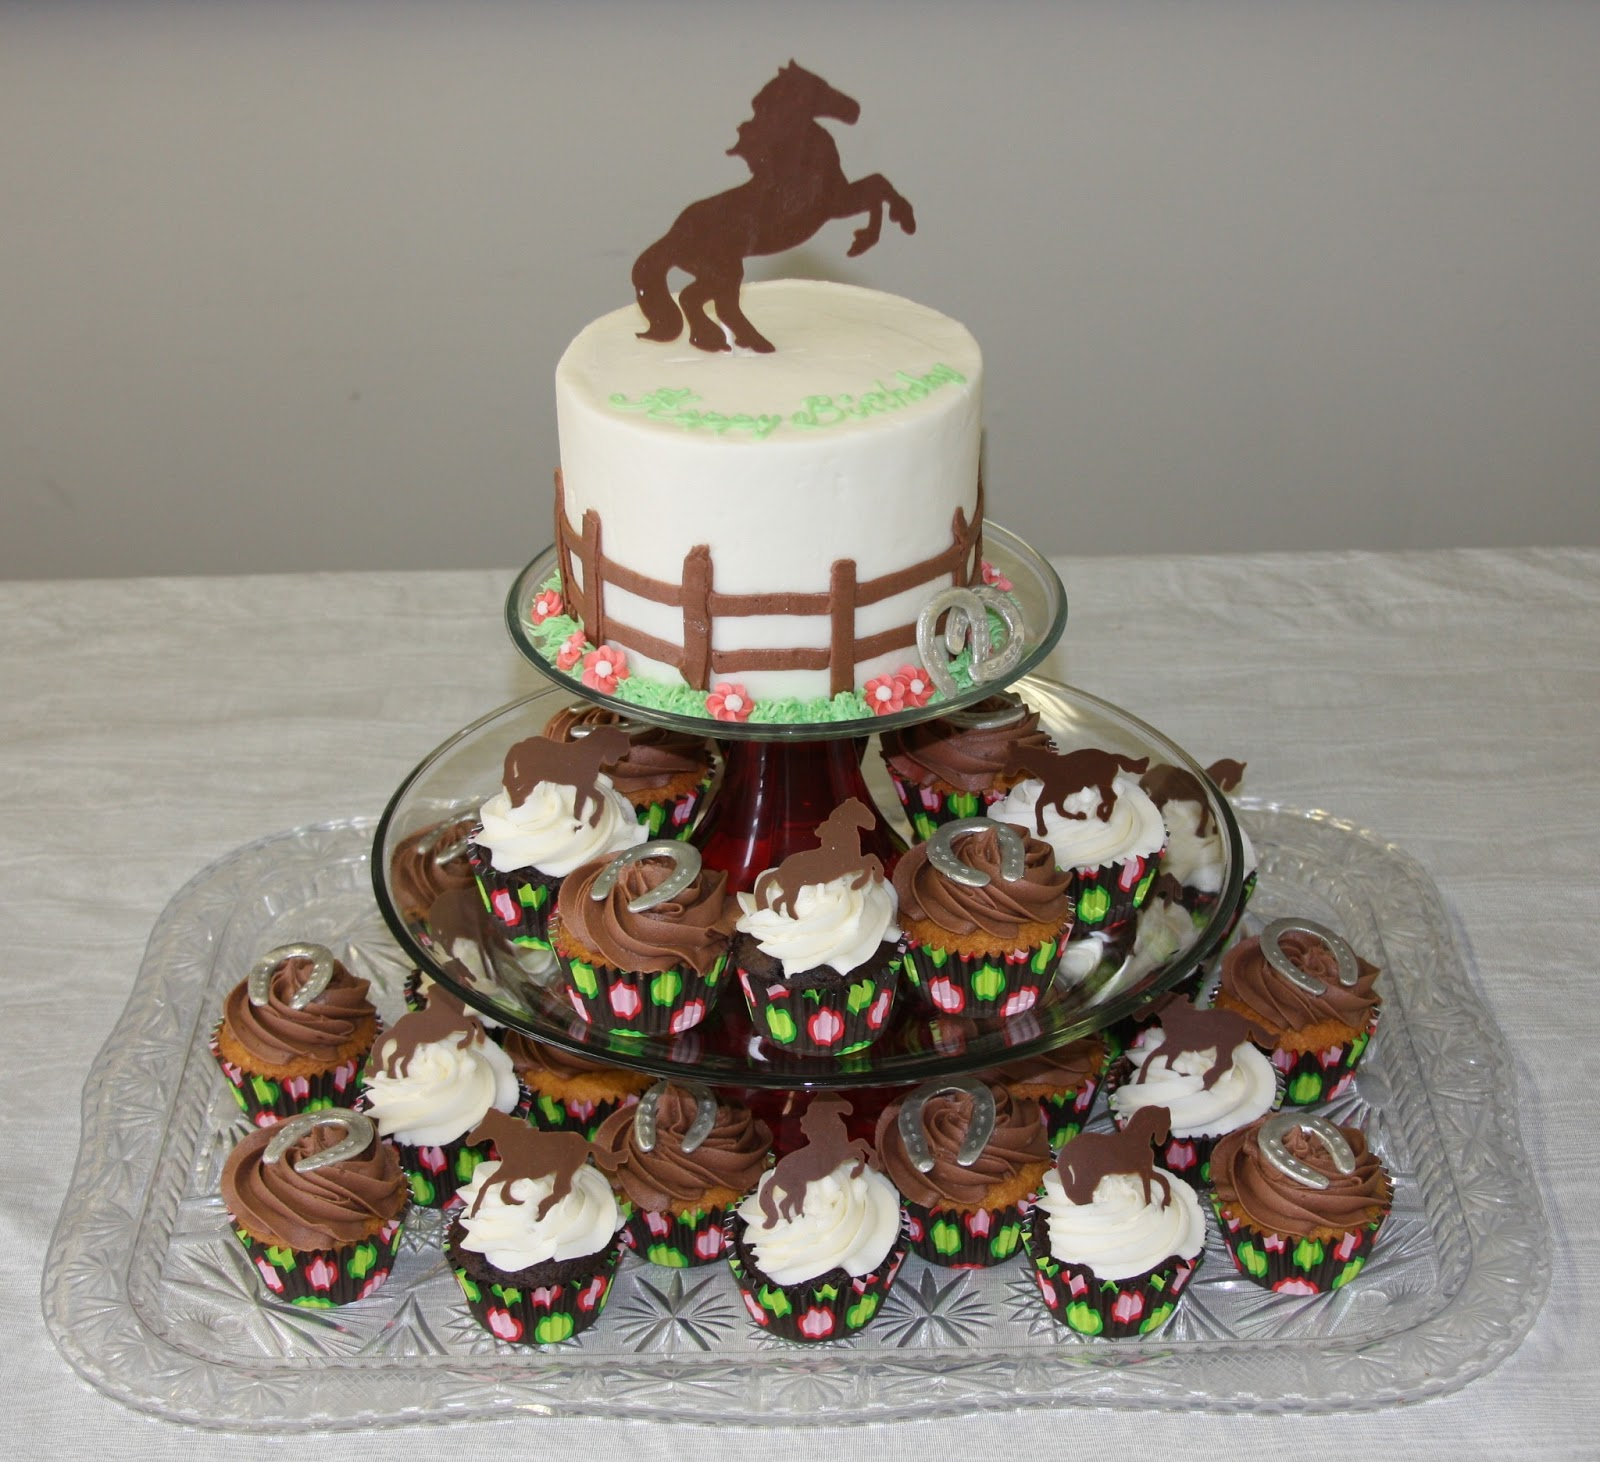 Tammy's Frosted Memories: Horse Lovers Cake